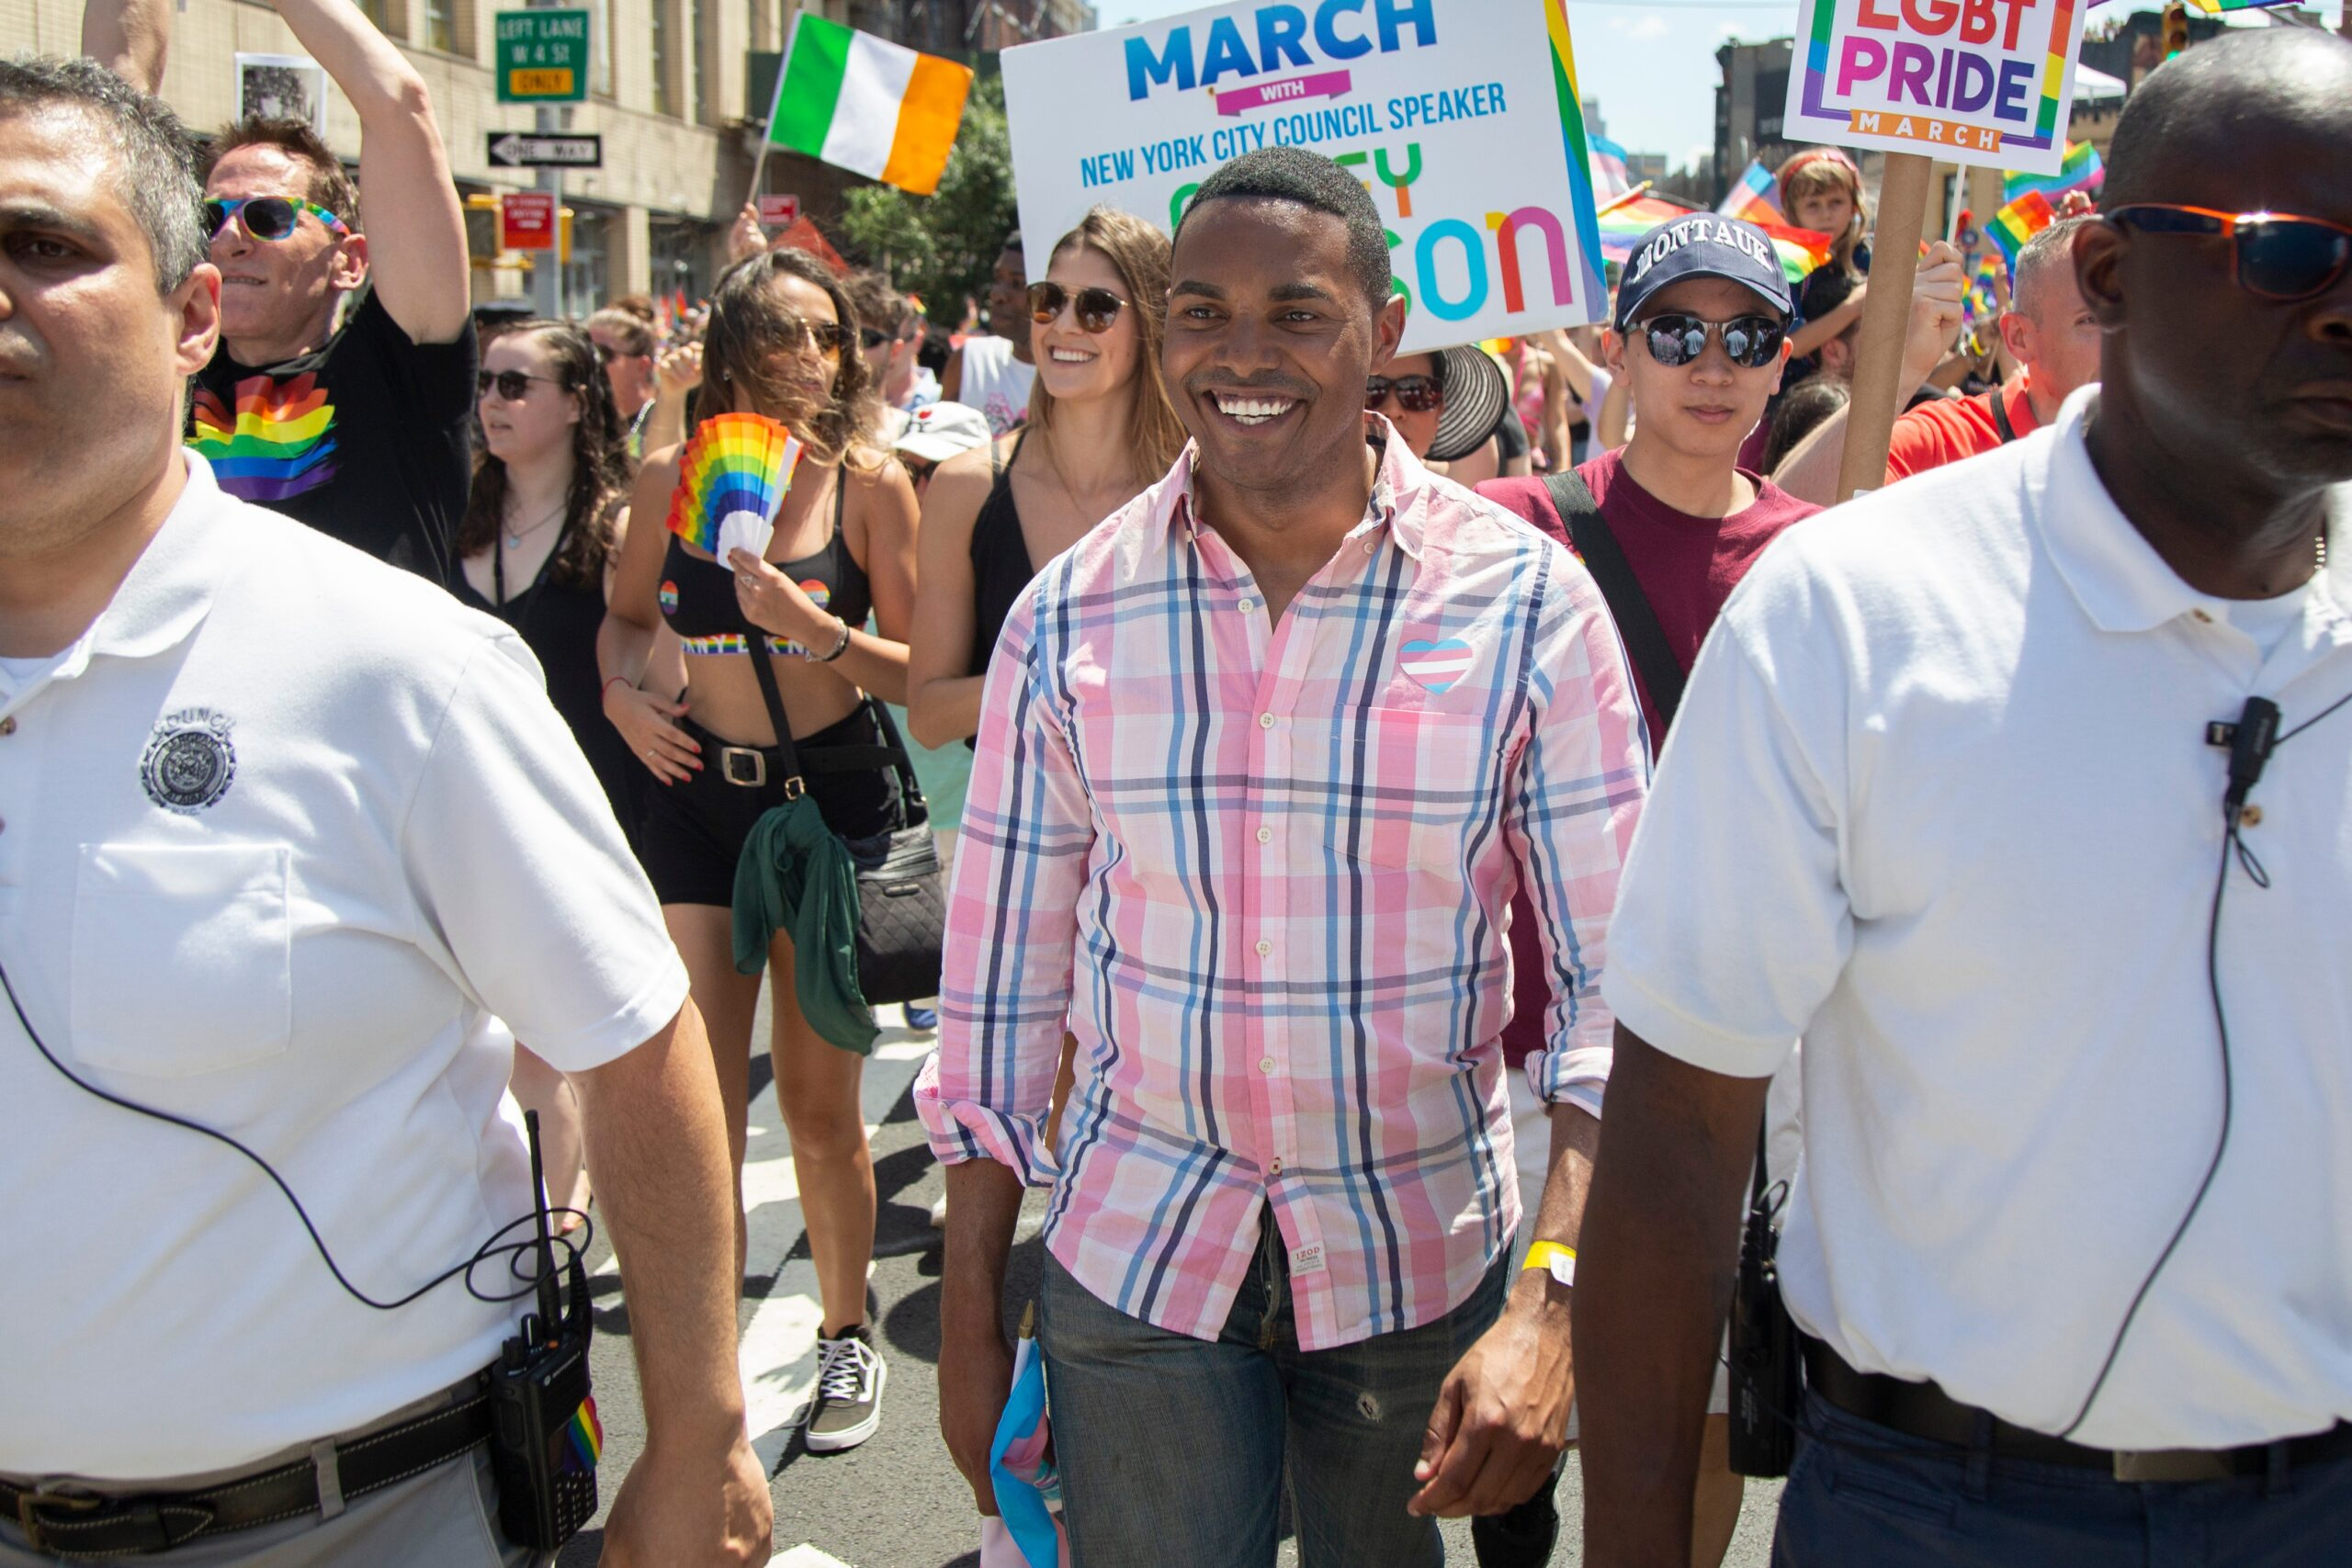 Pride in Pictures: Rep. Ritchie Torres celebrates loudly and proudly